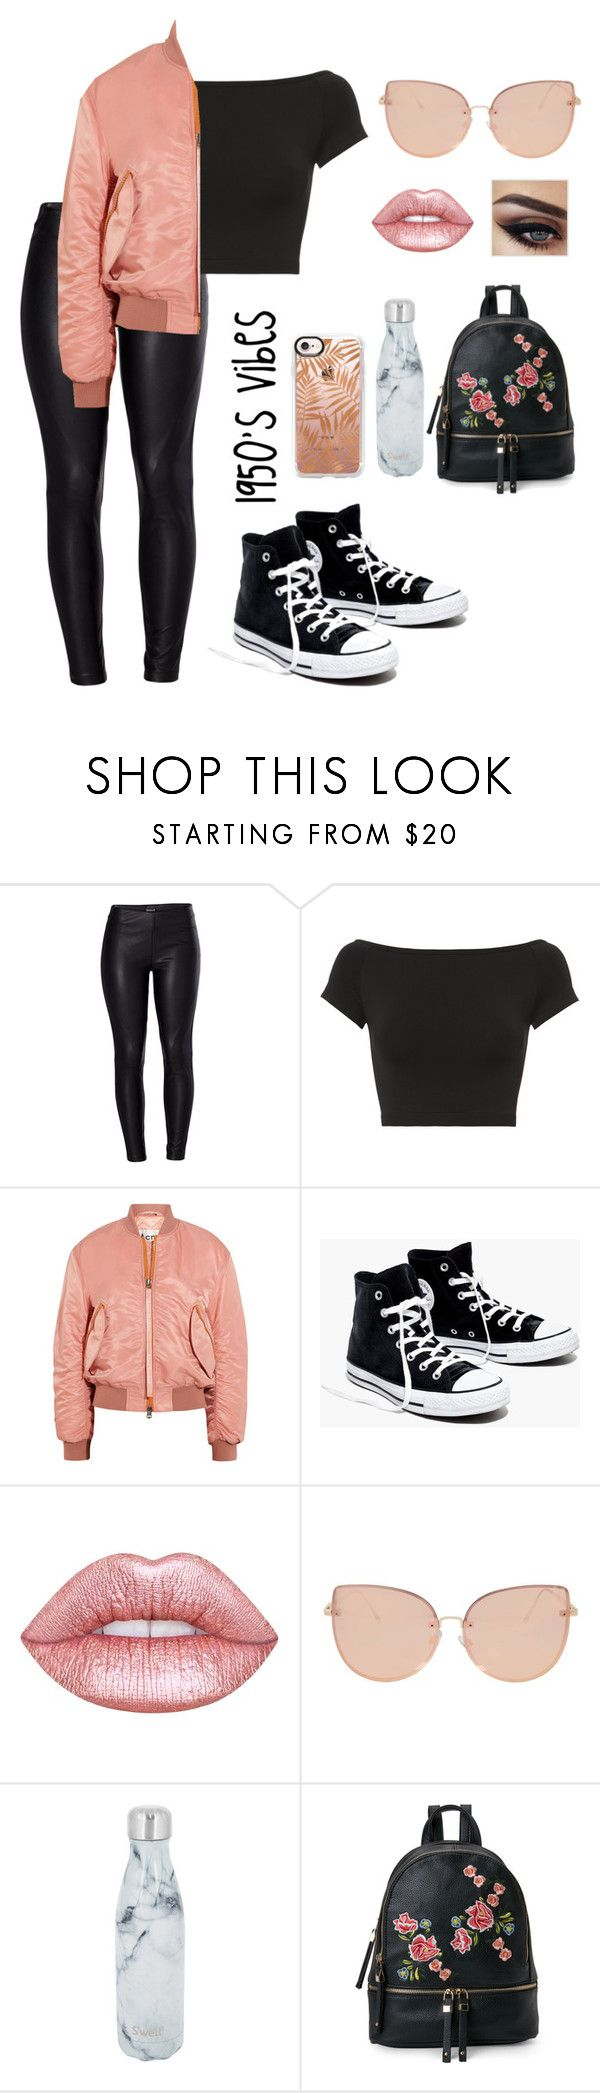 1950's Vibes by writersblockproblems on Polyvore featuring Helmut Lang, Acne Studios, Venus, Madewell, Urban Expressions, Topshop, Casetify, Lime Crime and S'well